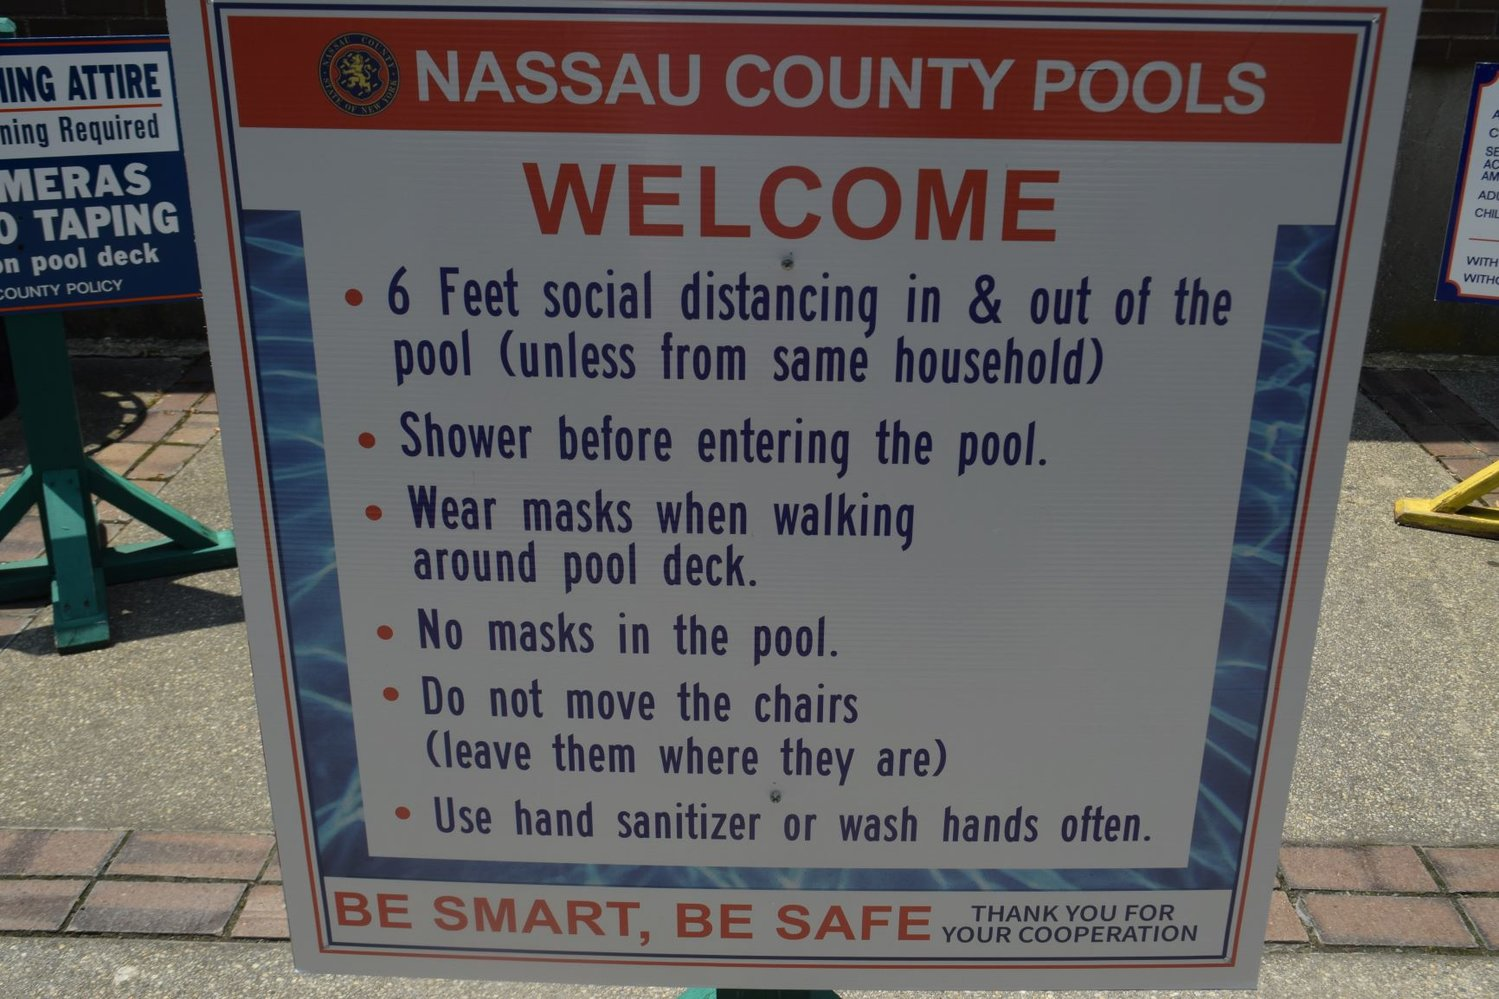 Nassau County's rules for using the swimming area at North Woodmere Park.